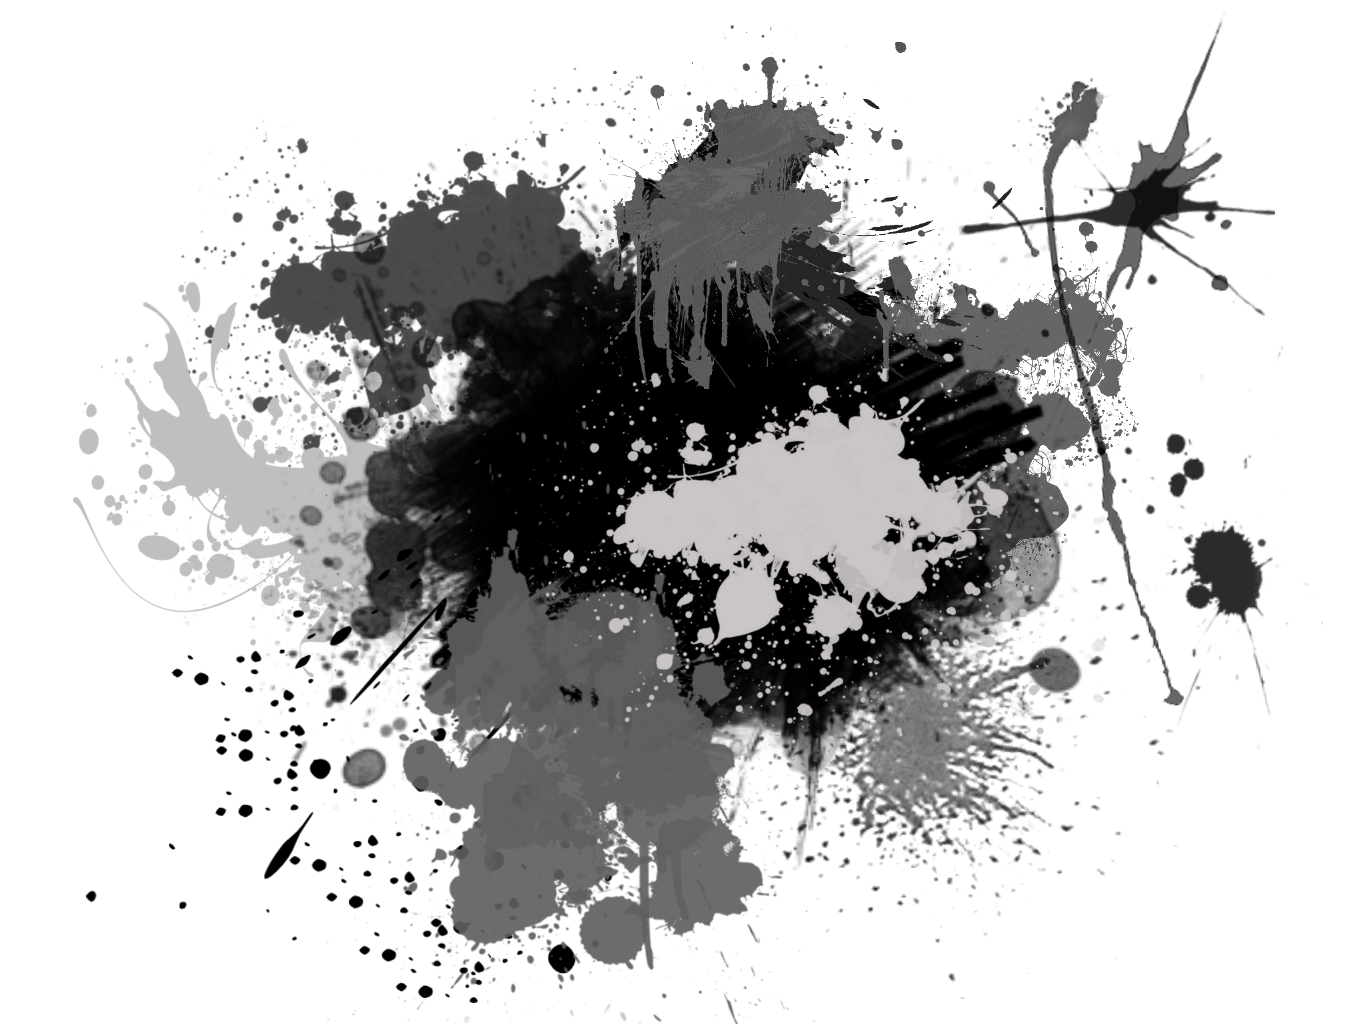 Ink splash transparent background png I put together